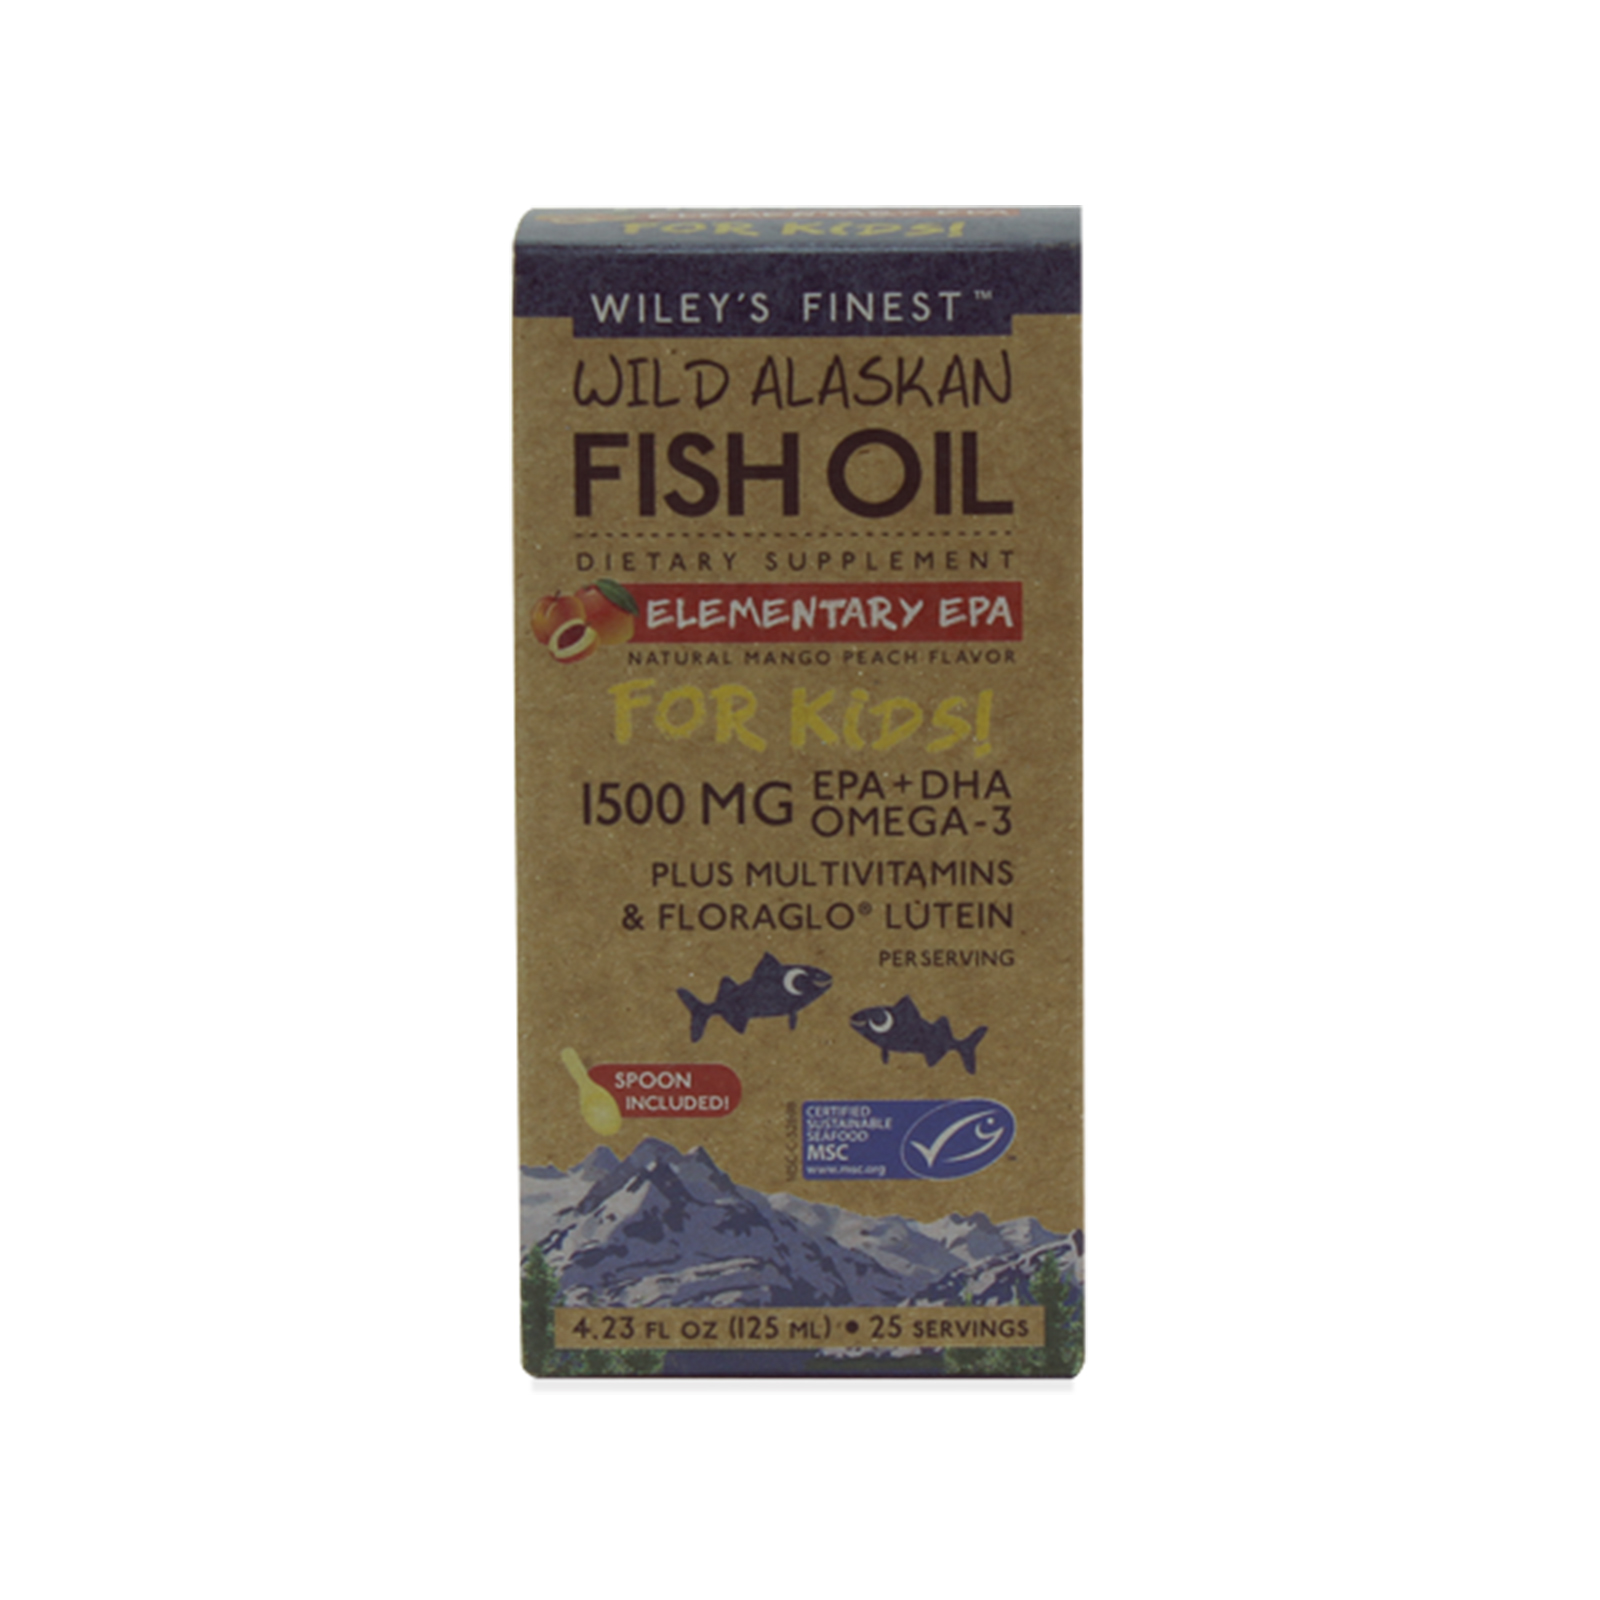 wiley-finest-elementary-epa-125ml-front